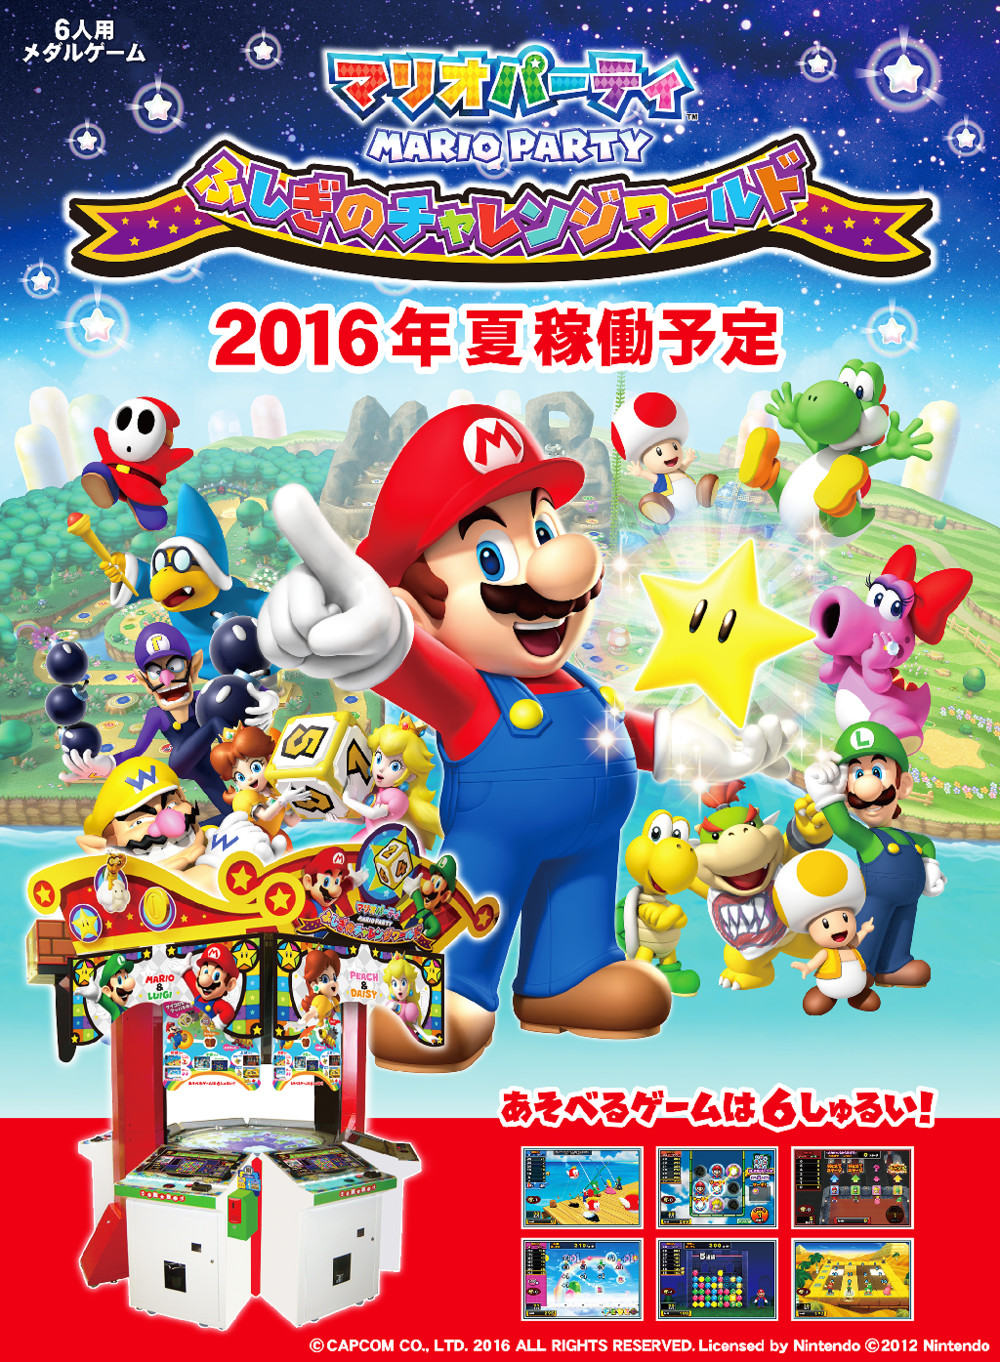 New Mario Party Arcade Machine Set To Appear In Japan